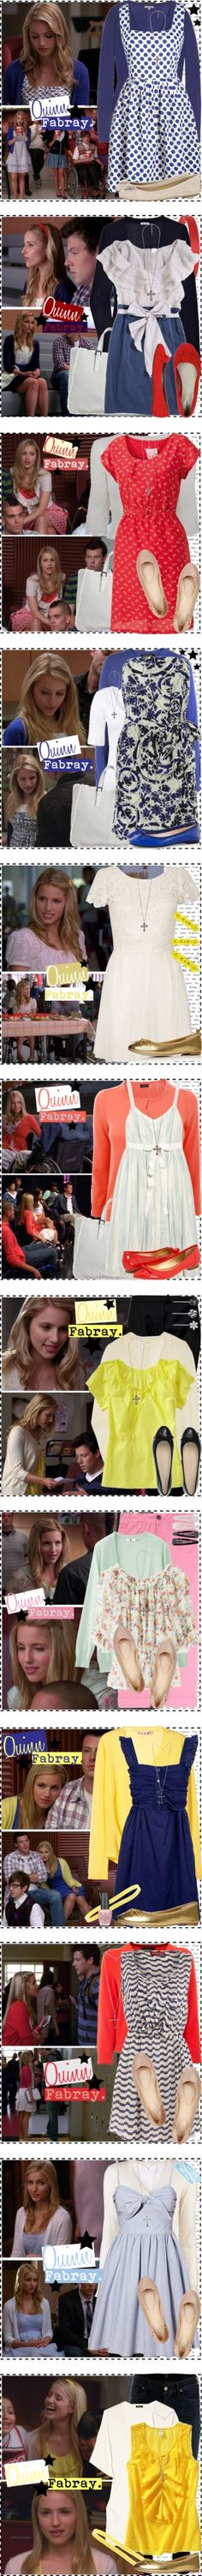 """""""Quinn Fabray [Glee]."""" by silver-screen-style ❤ liked on Polyvore"""